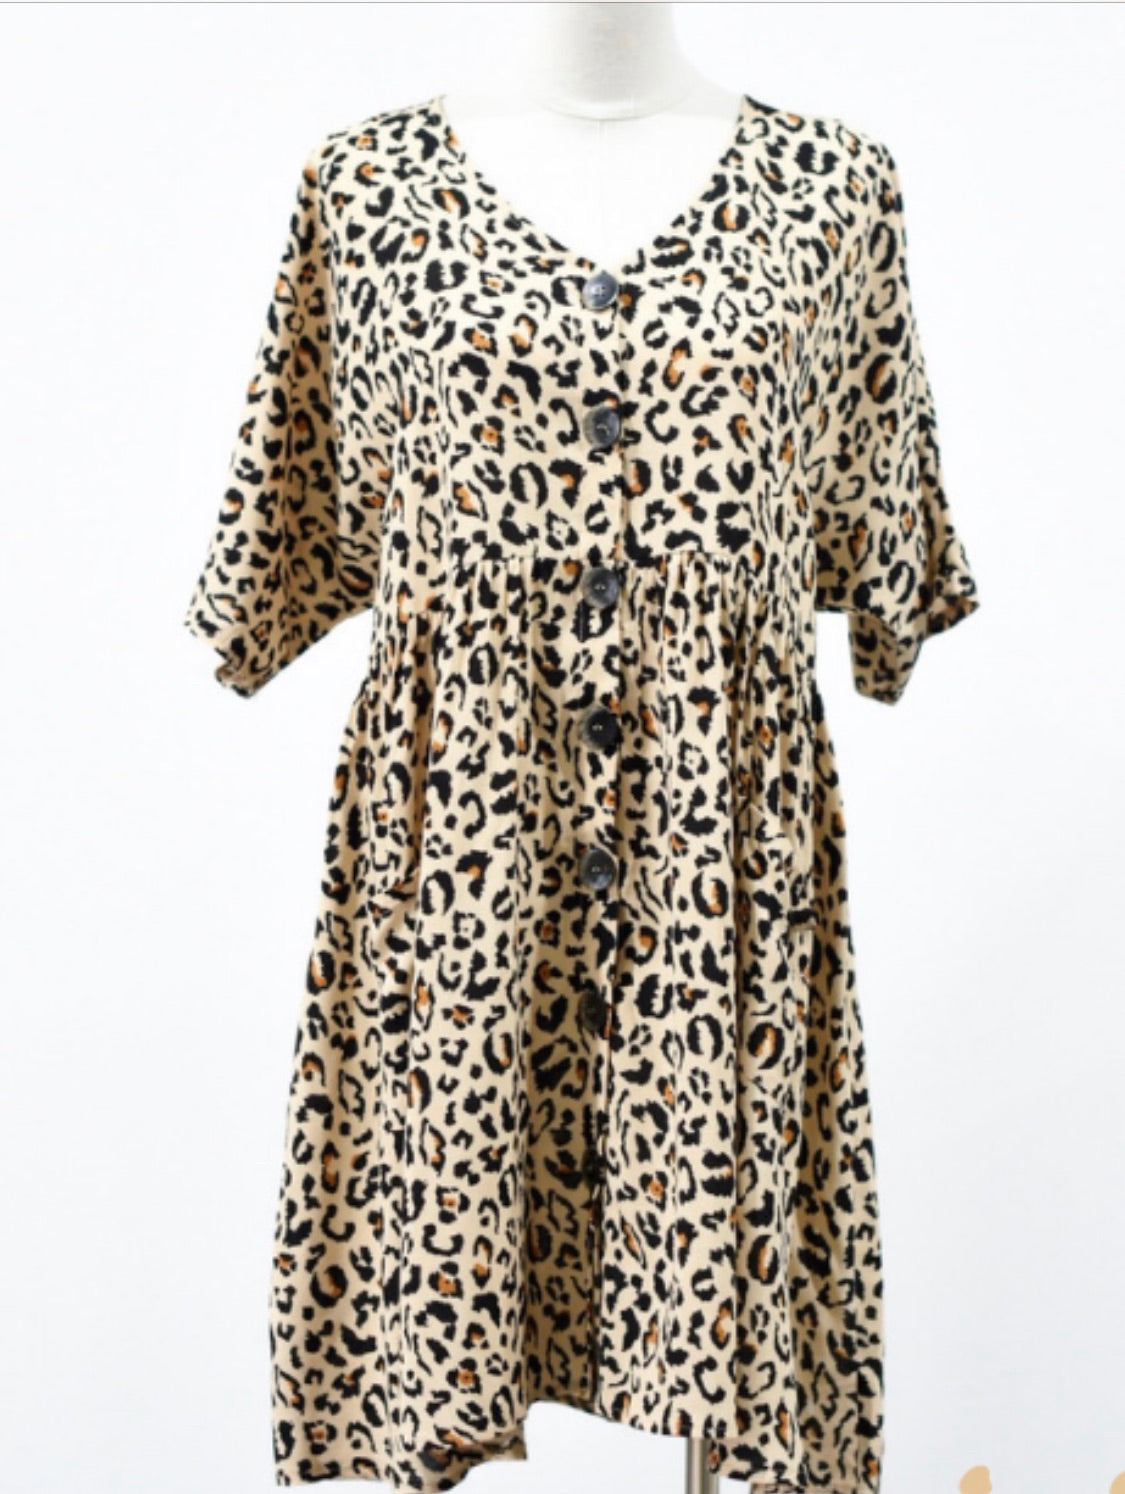 Tiffany Leopard  Dress - Tan